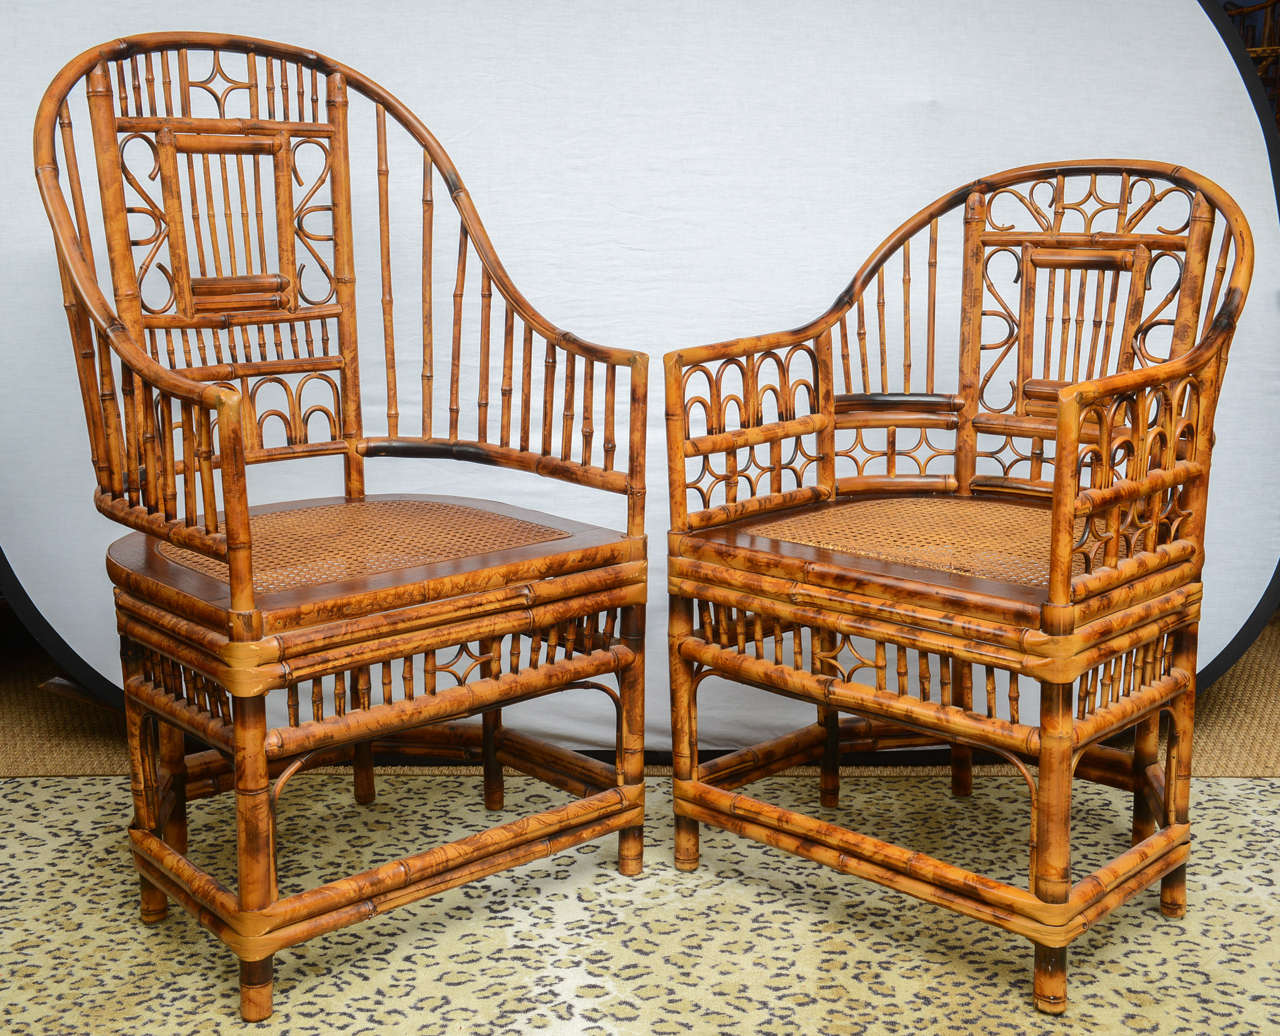 Vintage Bamboo Furniture Home Office With Bamboo Furniture Lock - Chinese chippendale bedroom furniture